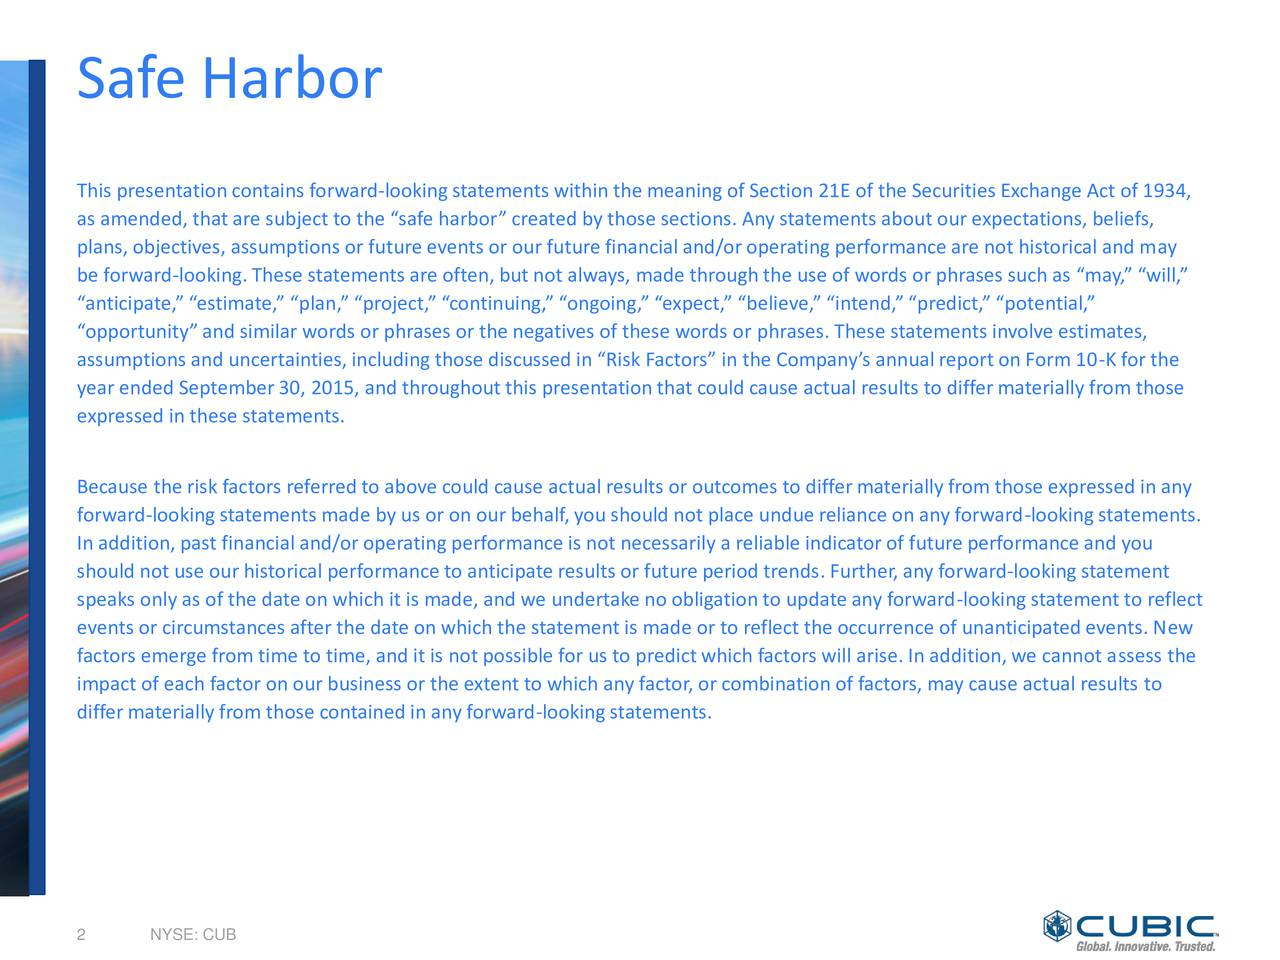 This presentation contains forward-lookingstatements within the meaning of Section 21E of the Securities Exchange Act of 1934, as amended, that are subject to the safe harbor created by those sections. Any statements about our expectations, beliefs, plans, objectives, assumptions or future events or our future financial and/or operatingperformance are not historical and may be forward-looking.These statements are often, but not always, made throughthe use of words or phrases such as may, will, anticipate, estimate, plan, project, continuing, ongoing, expect, believe, intend,predict, potential, opportunityand similar words or phrases or the negatives of these words or phrases. These statements involve estimates, assumptions and uncertainties, includingthose discussed in Risk Factors in the Companys annualreport on Form 10-K for the year ended September30, 2015, and throughoutthis presentation that could cause actual results to differmaterially from those expressed in these statements. Because the risk factors referredto above could cause actual results or outcomes to differmaterially from those expressed in any forward-lookingstatements made by us or on our behalf,you should not place undue reliance on any forward-lookingstatements. In addition,past financial and/or operatingperformance is not necessarily a reliable indicator of future performance and you should not use our historical performance to anticipate results or future period trends. Further,any forward-lookingstatement speaks only as of the date on which it is made, and we undertake no obligation to update any forward-lookingstatement to reflect events or circumstances after the date on which the statement is made or to reflect the occurrence of unanticipatedevents. New factors emerge from time to time, and it is not possible for us to predict which factors will arise. In addition,we cannot assess the impact of each factor on our business or the extent to which any factor, or combination of factors, may cau